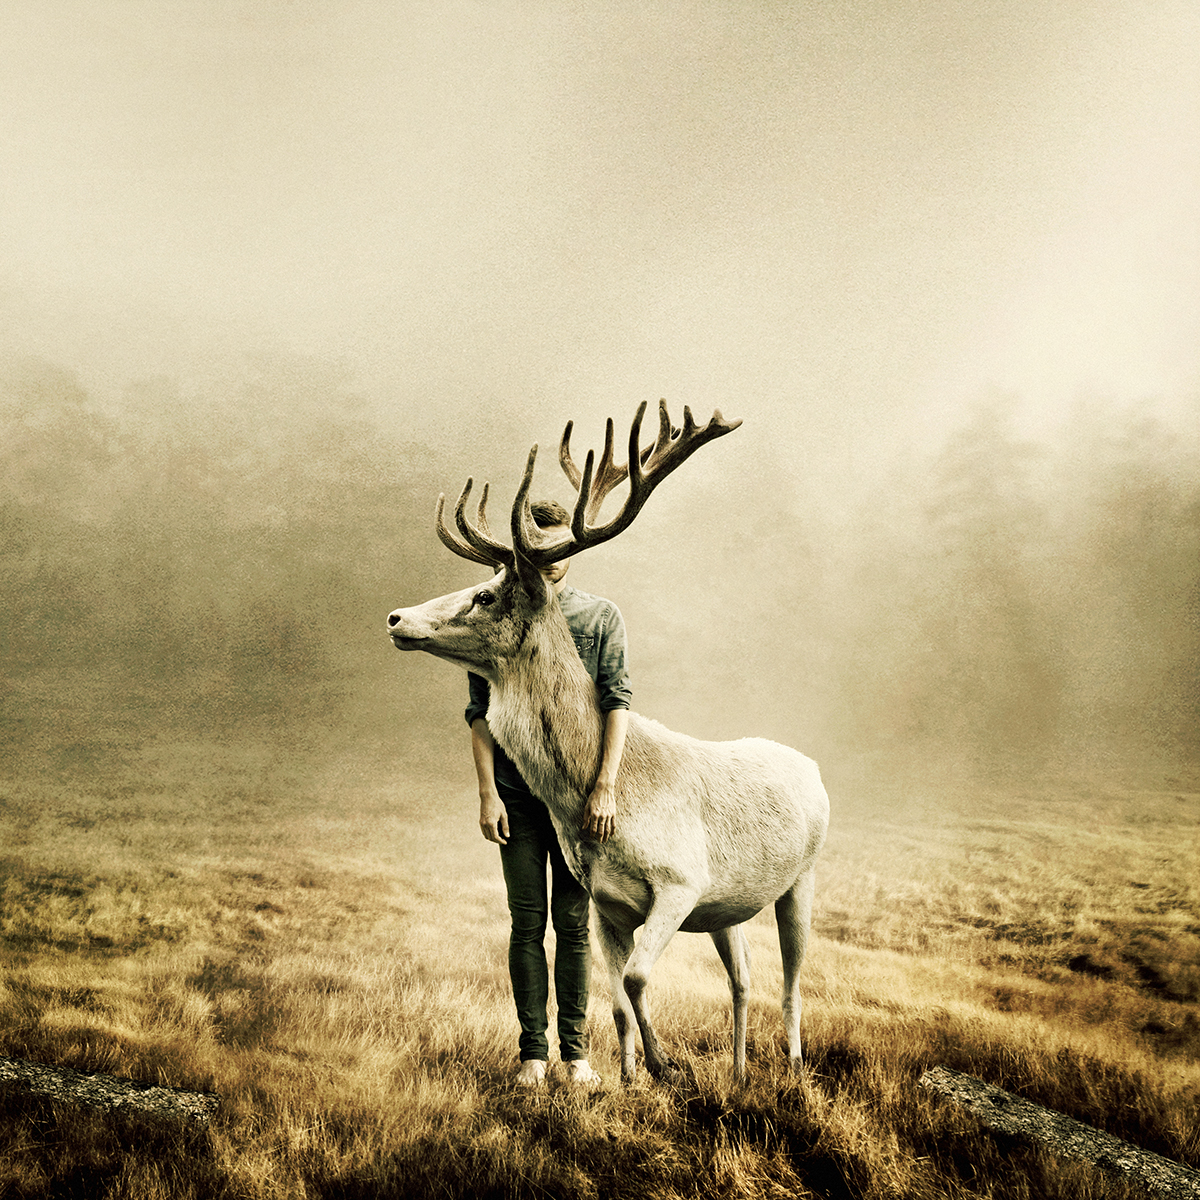 Martin Stranka, Wait A Little Longer, 2015, Photograph on Archival Museum Paper, 50 x 50 cm (20 x 20 in).jpg